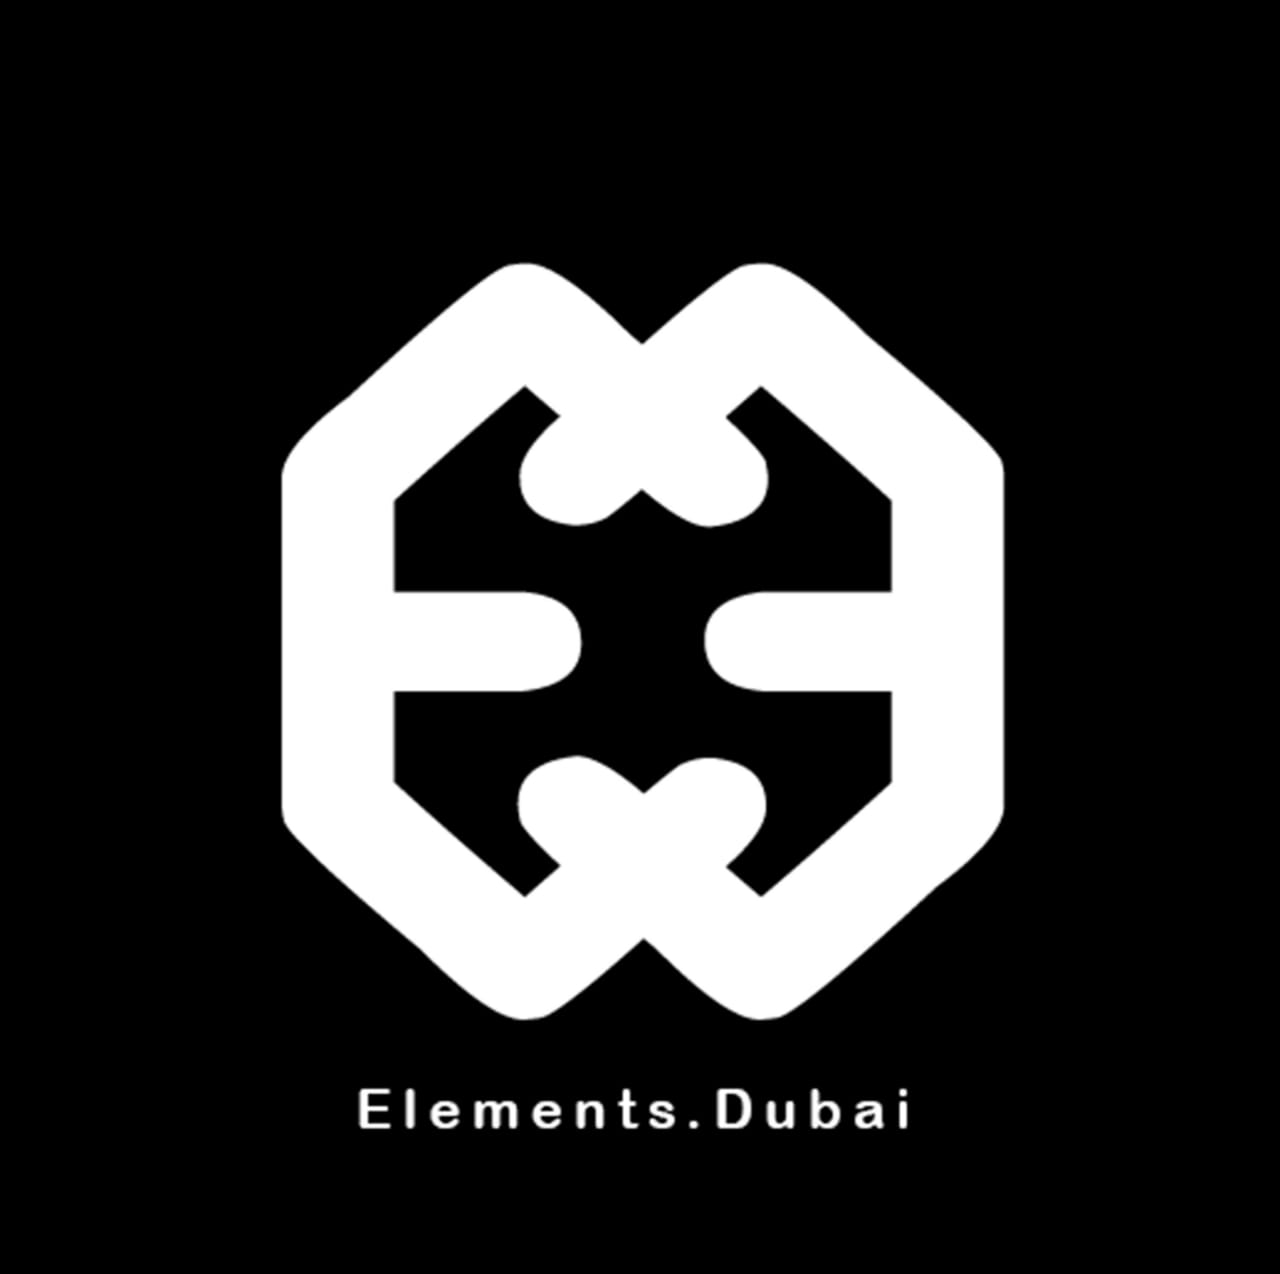 Elements. Dubai